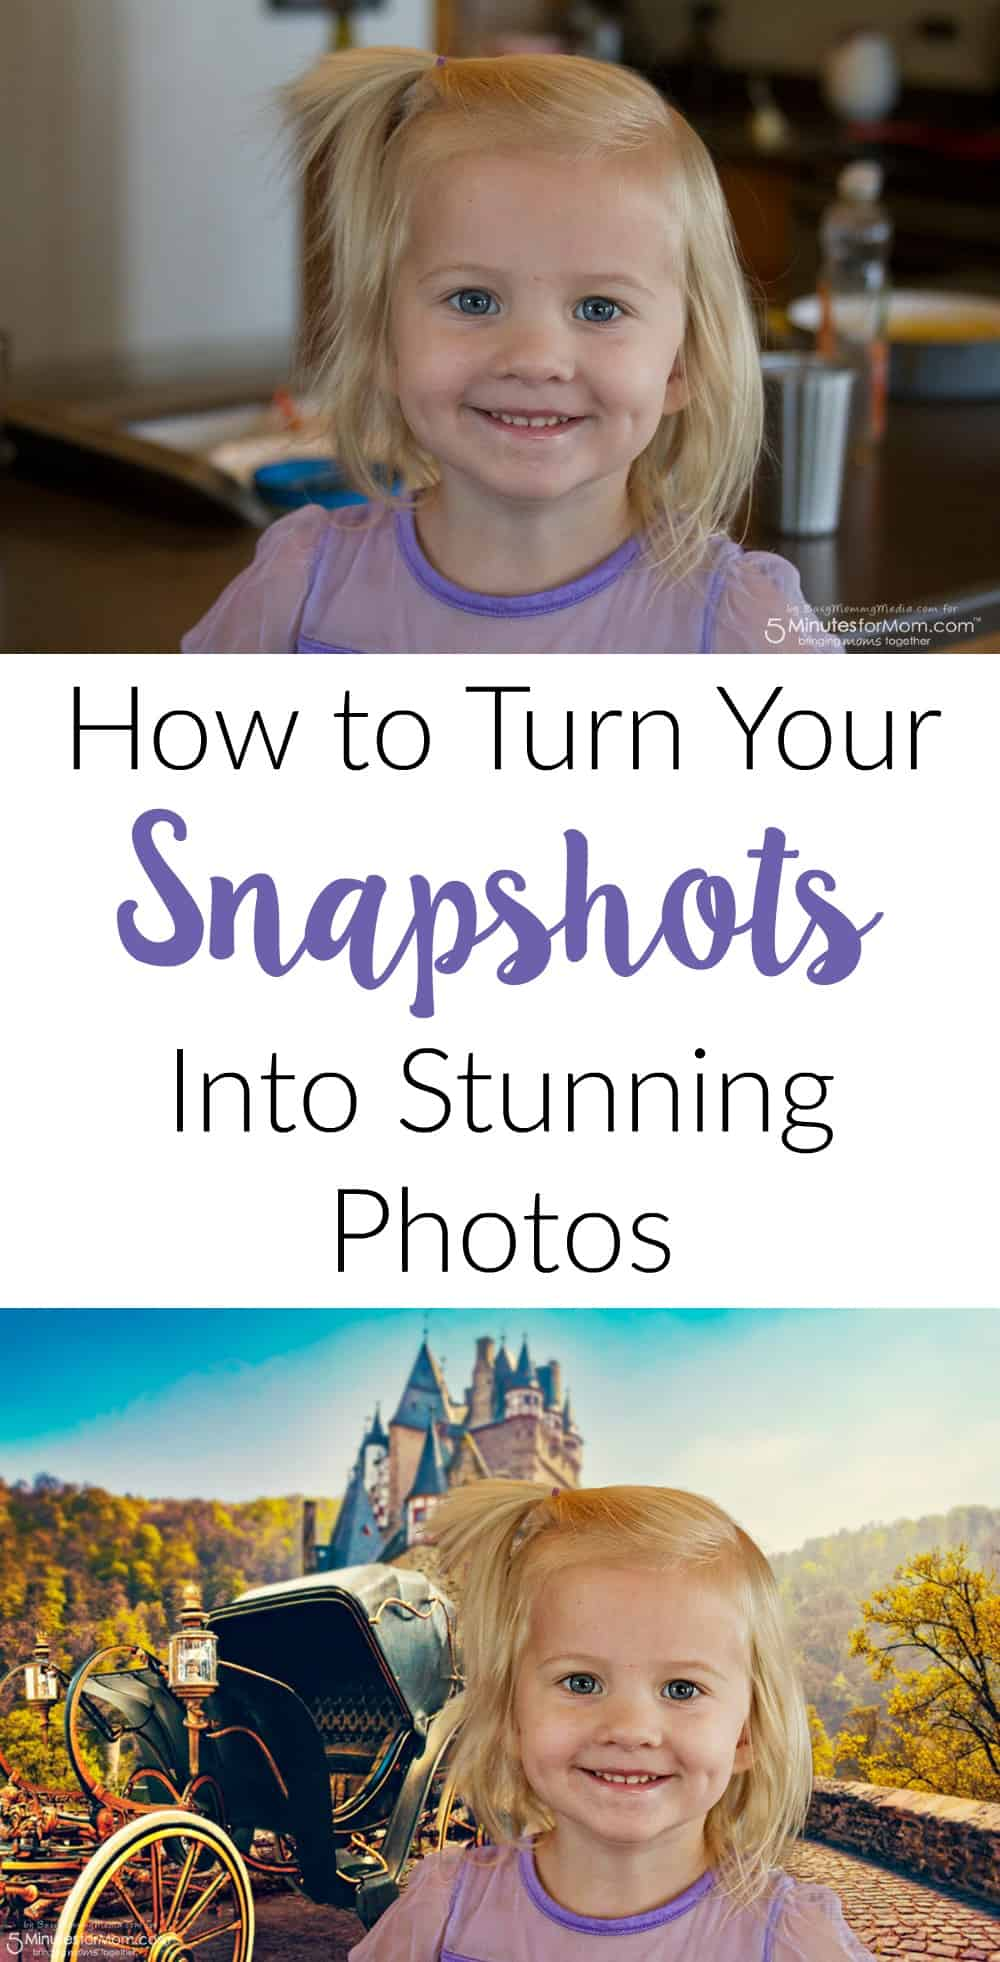 How to turn your snapshots into stunning photos